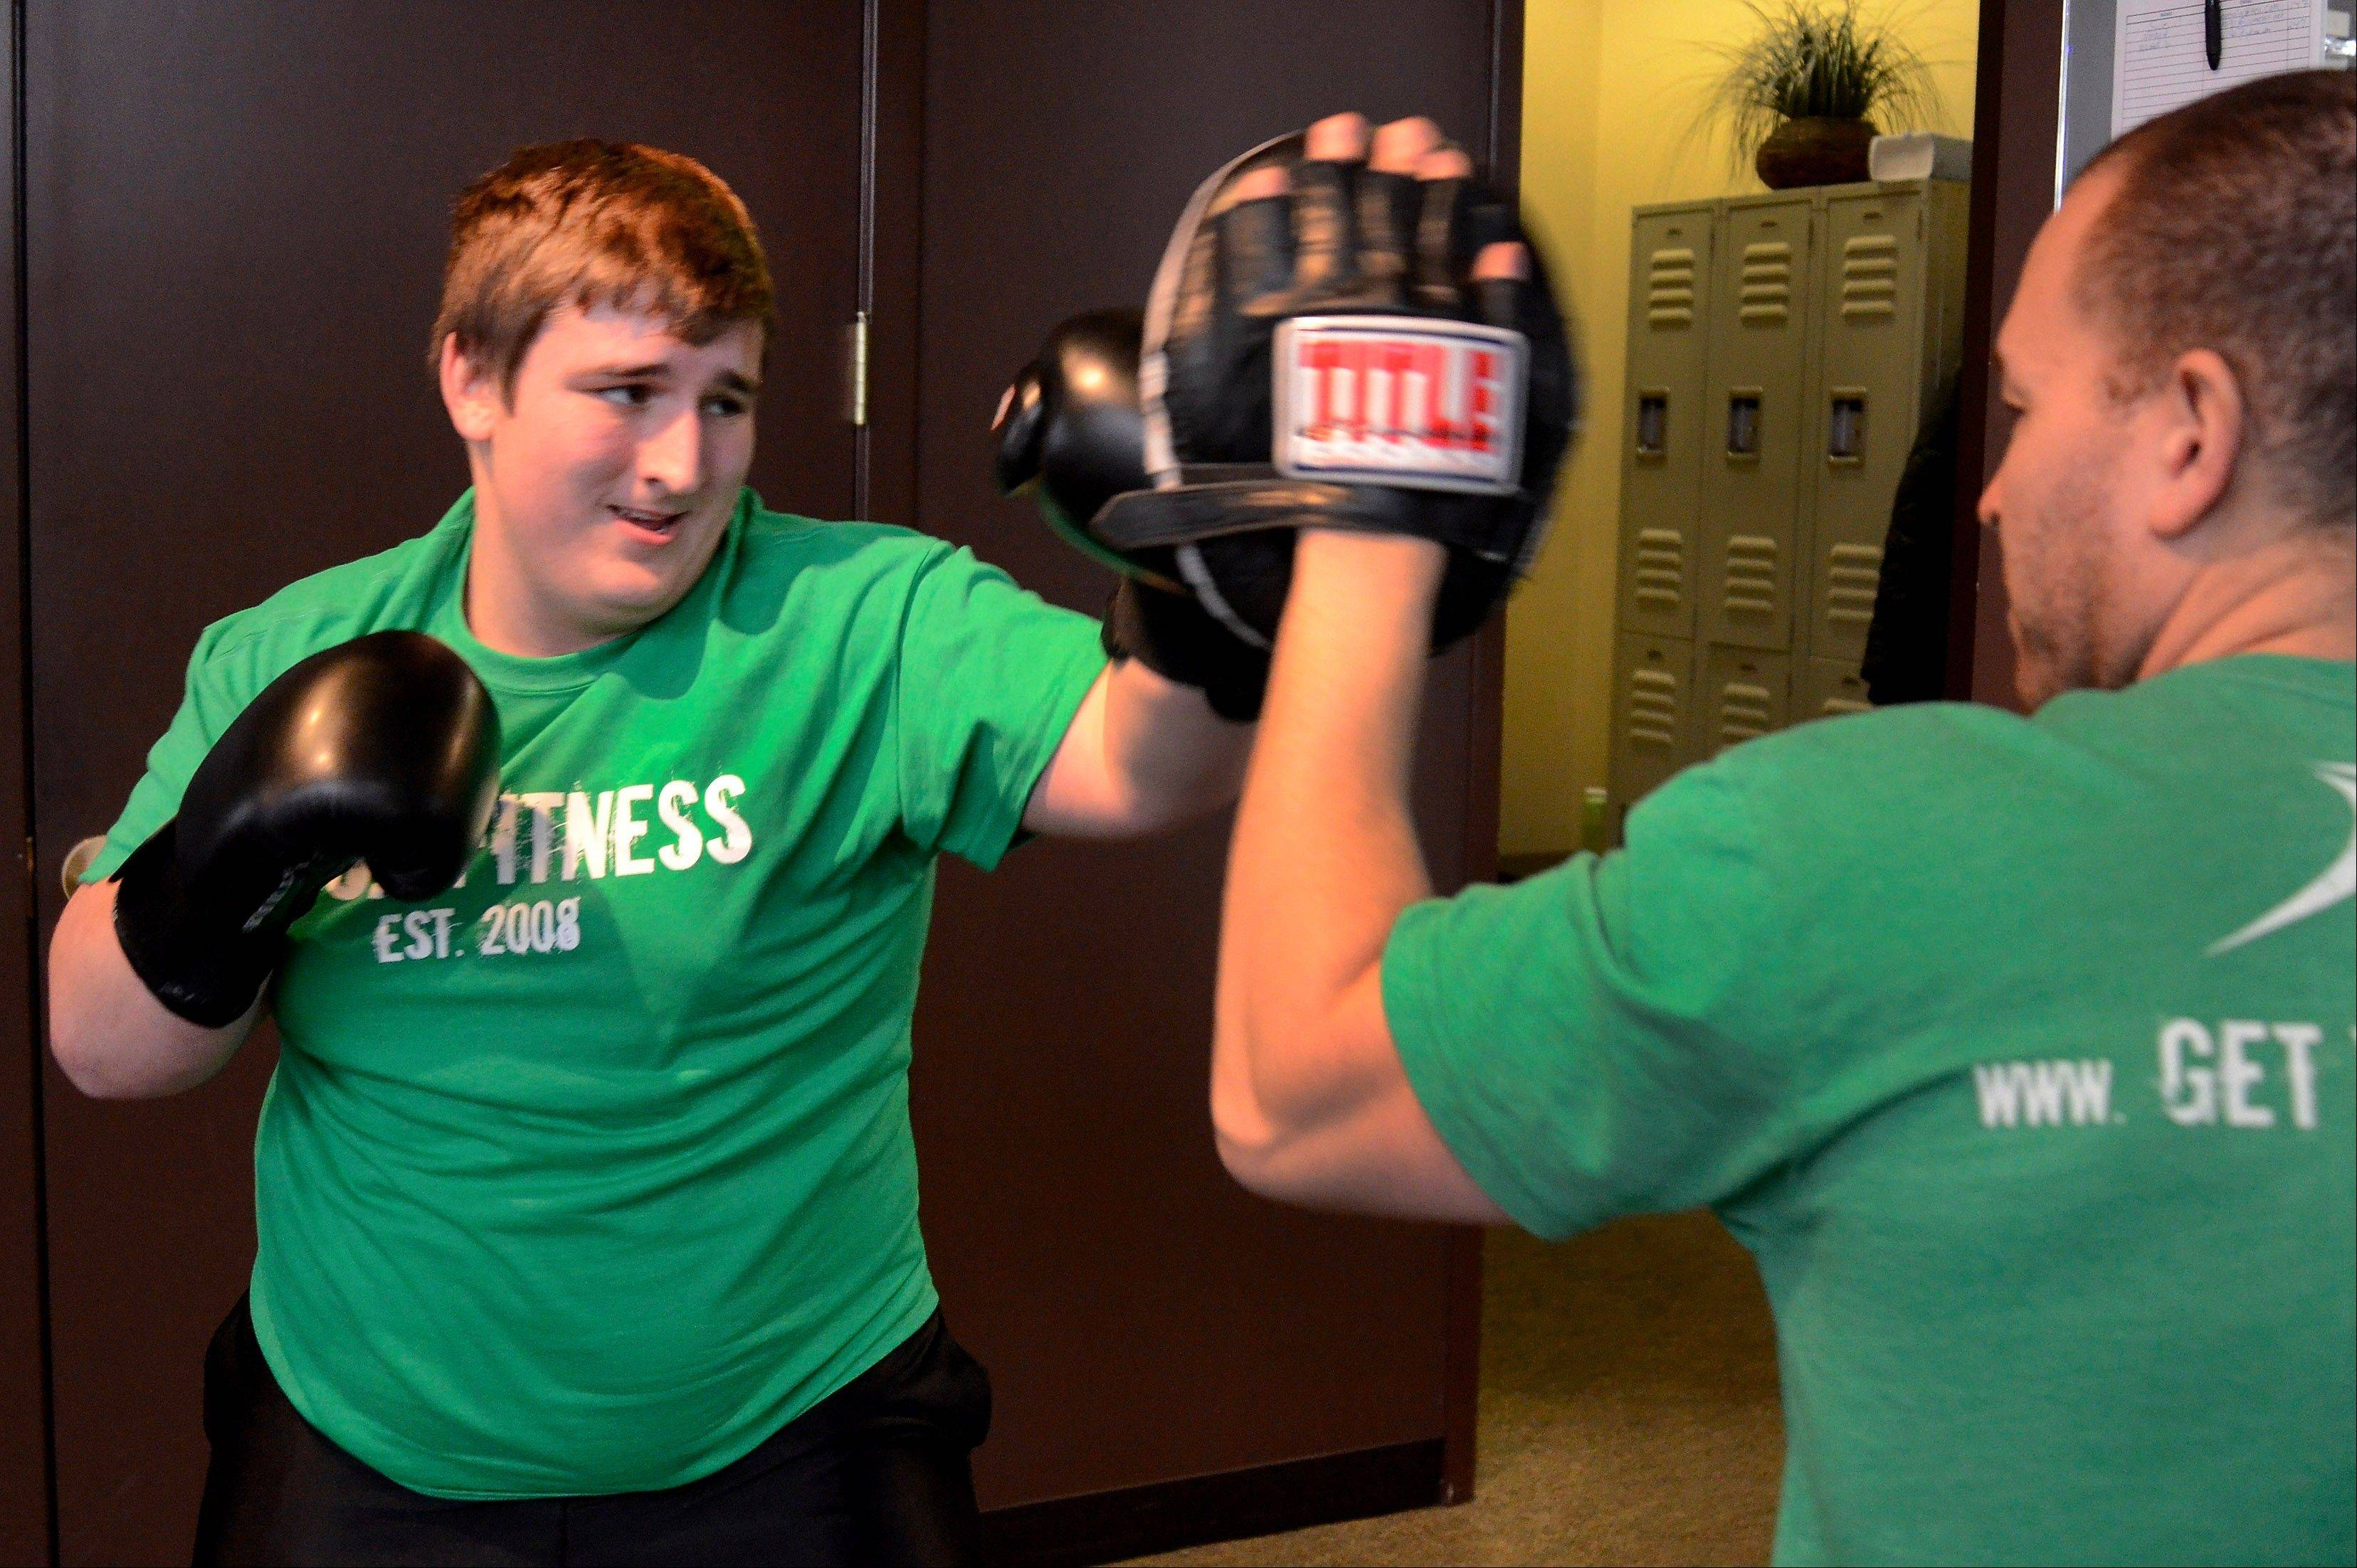 Boxing is Joe Gundling's favorite workout with trainer Tony Figueroa.